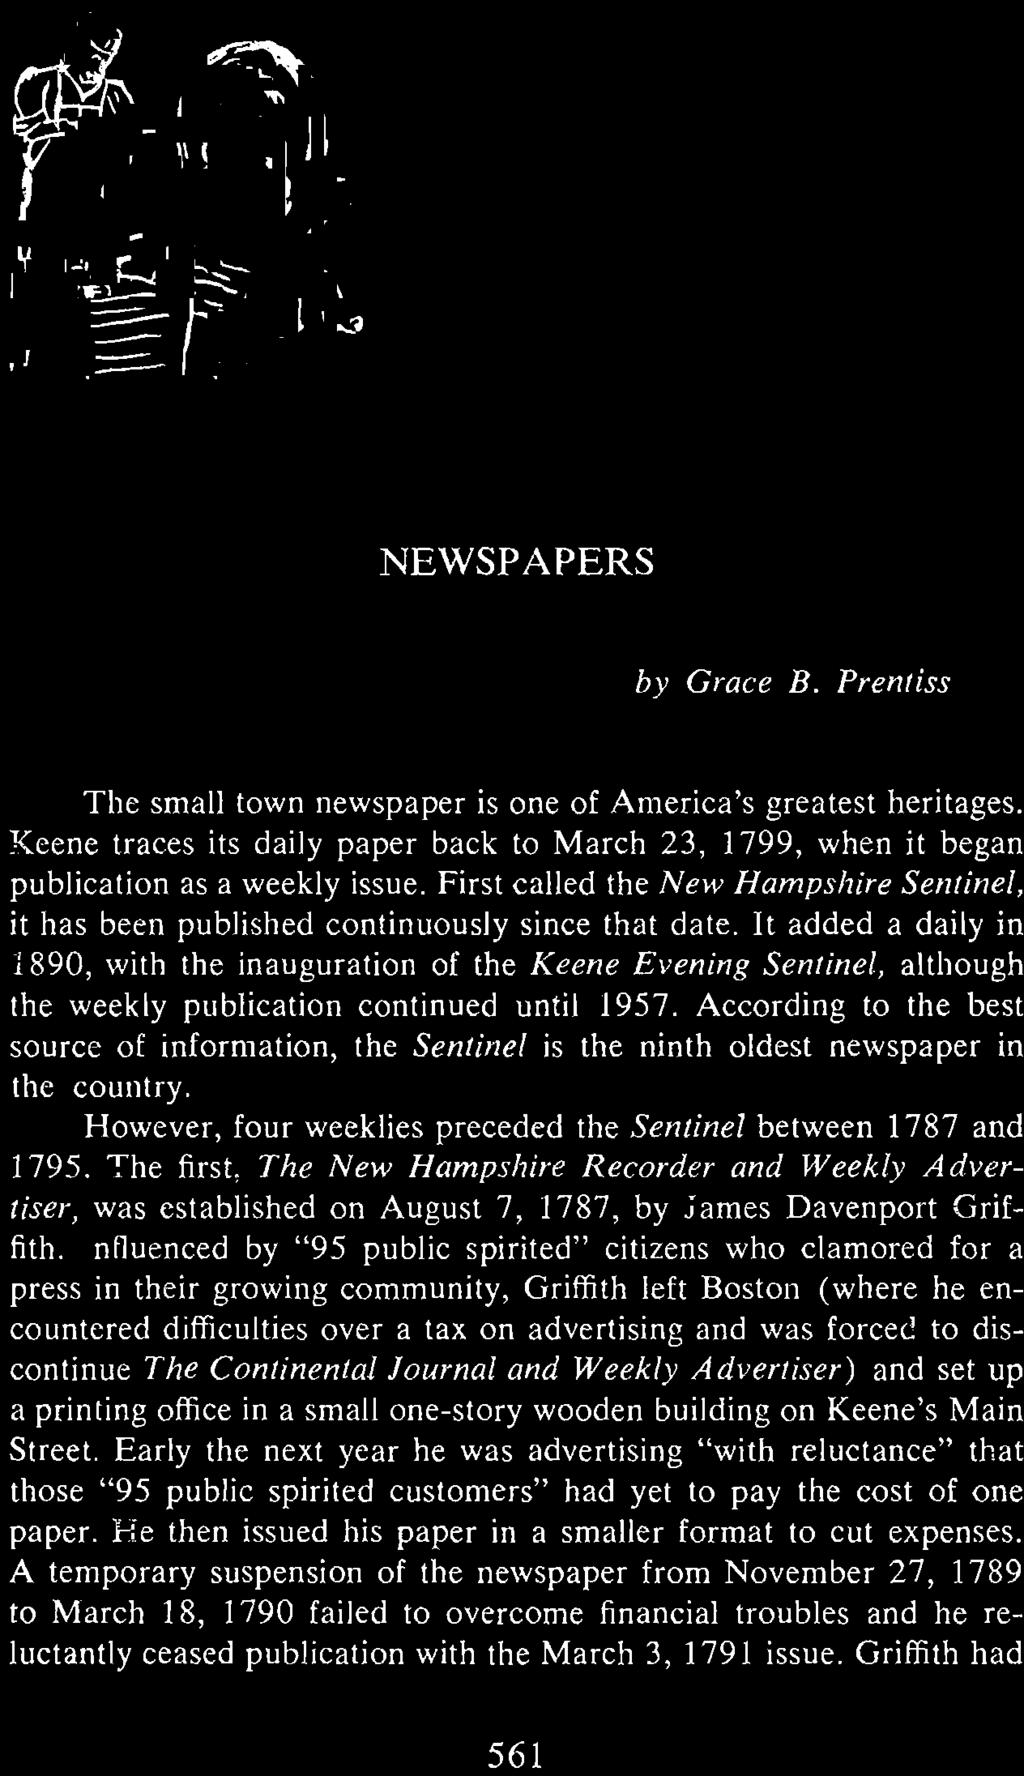 It added a daily in 1890, with the inauguration of the Keene Evening Sentinel, altho ugh the weekly publicat ion continued until 1957.